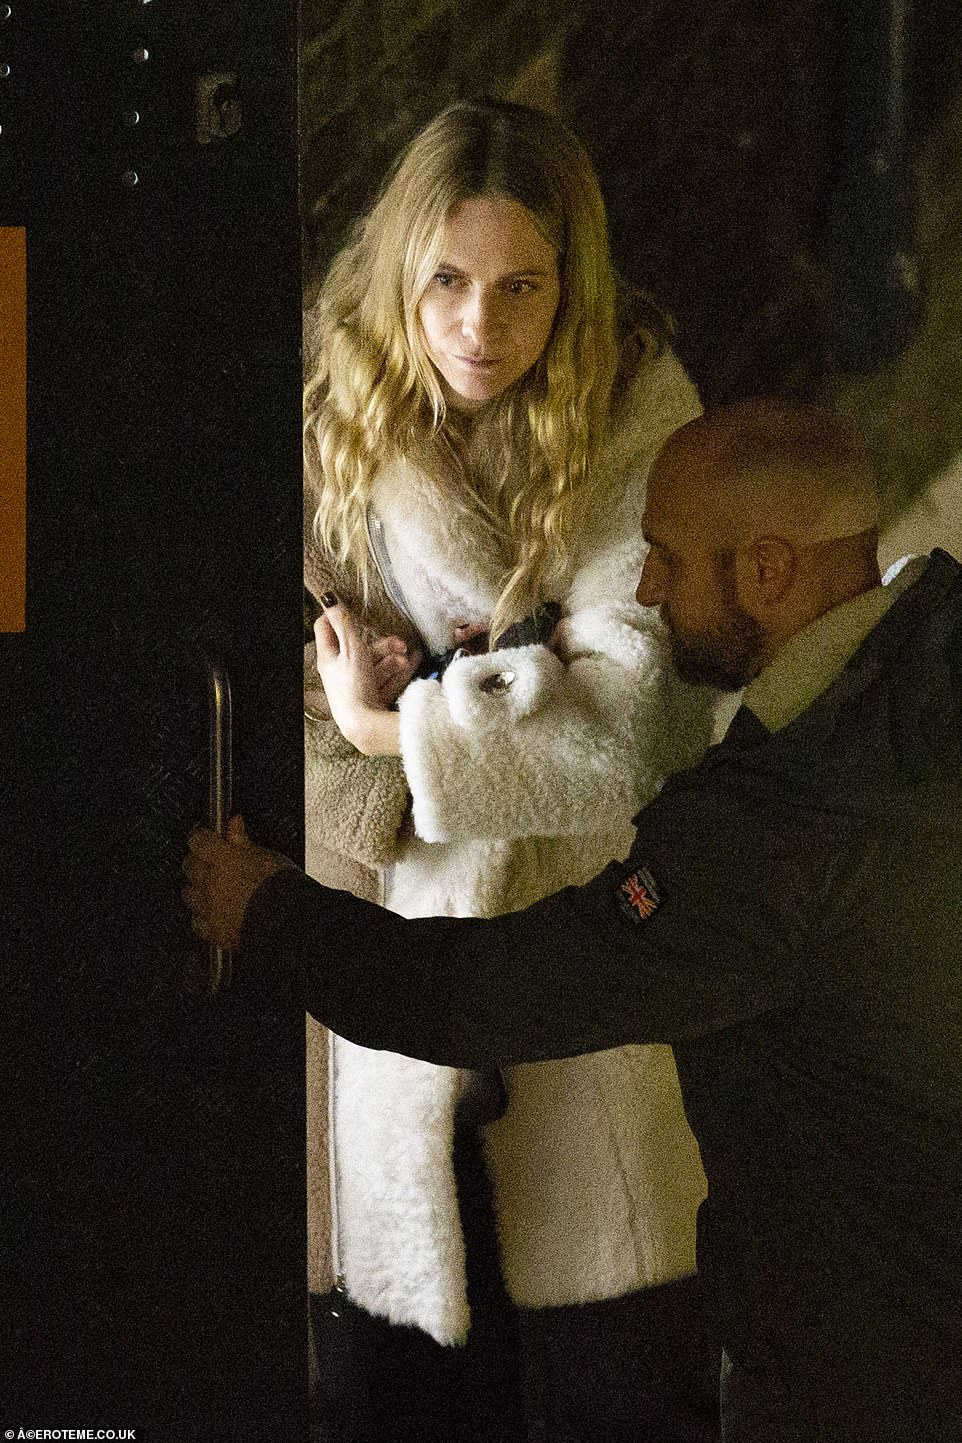 Model Poppy Delevingne was seen walking into the restaurant in a white fur coat while clutching a bottle